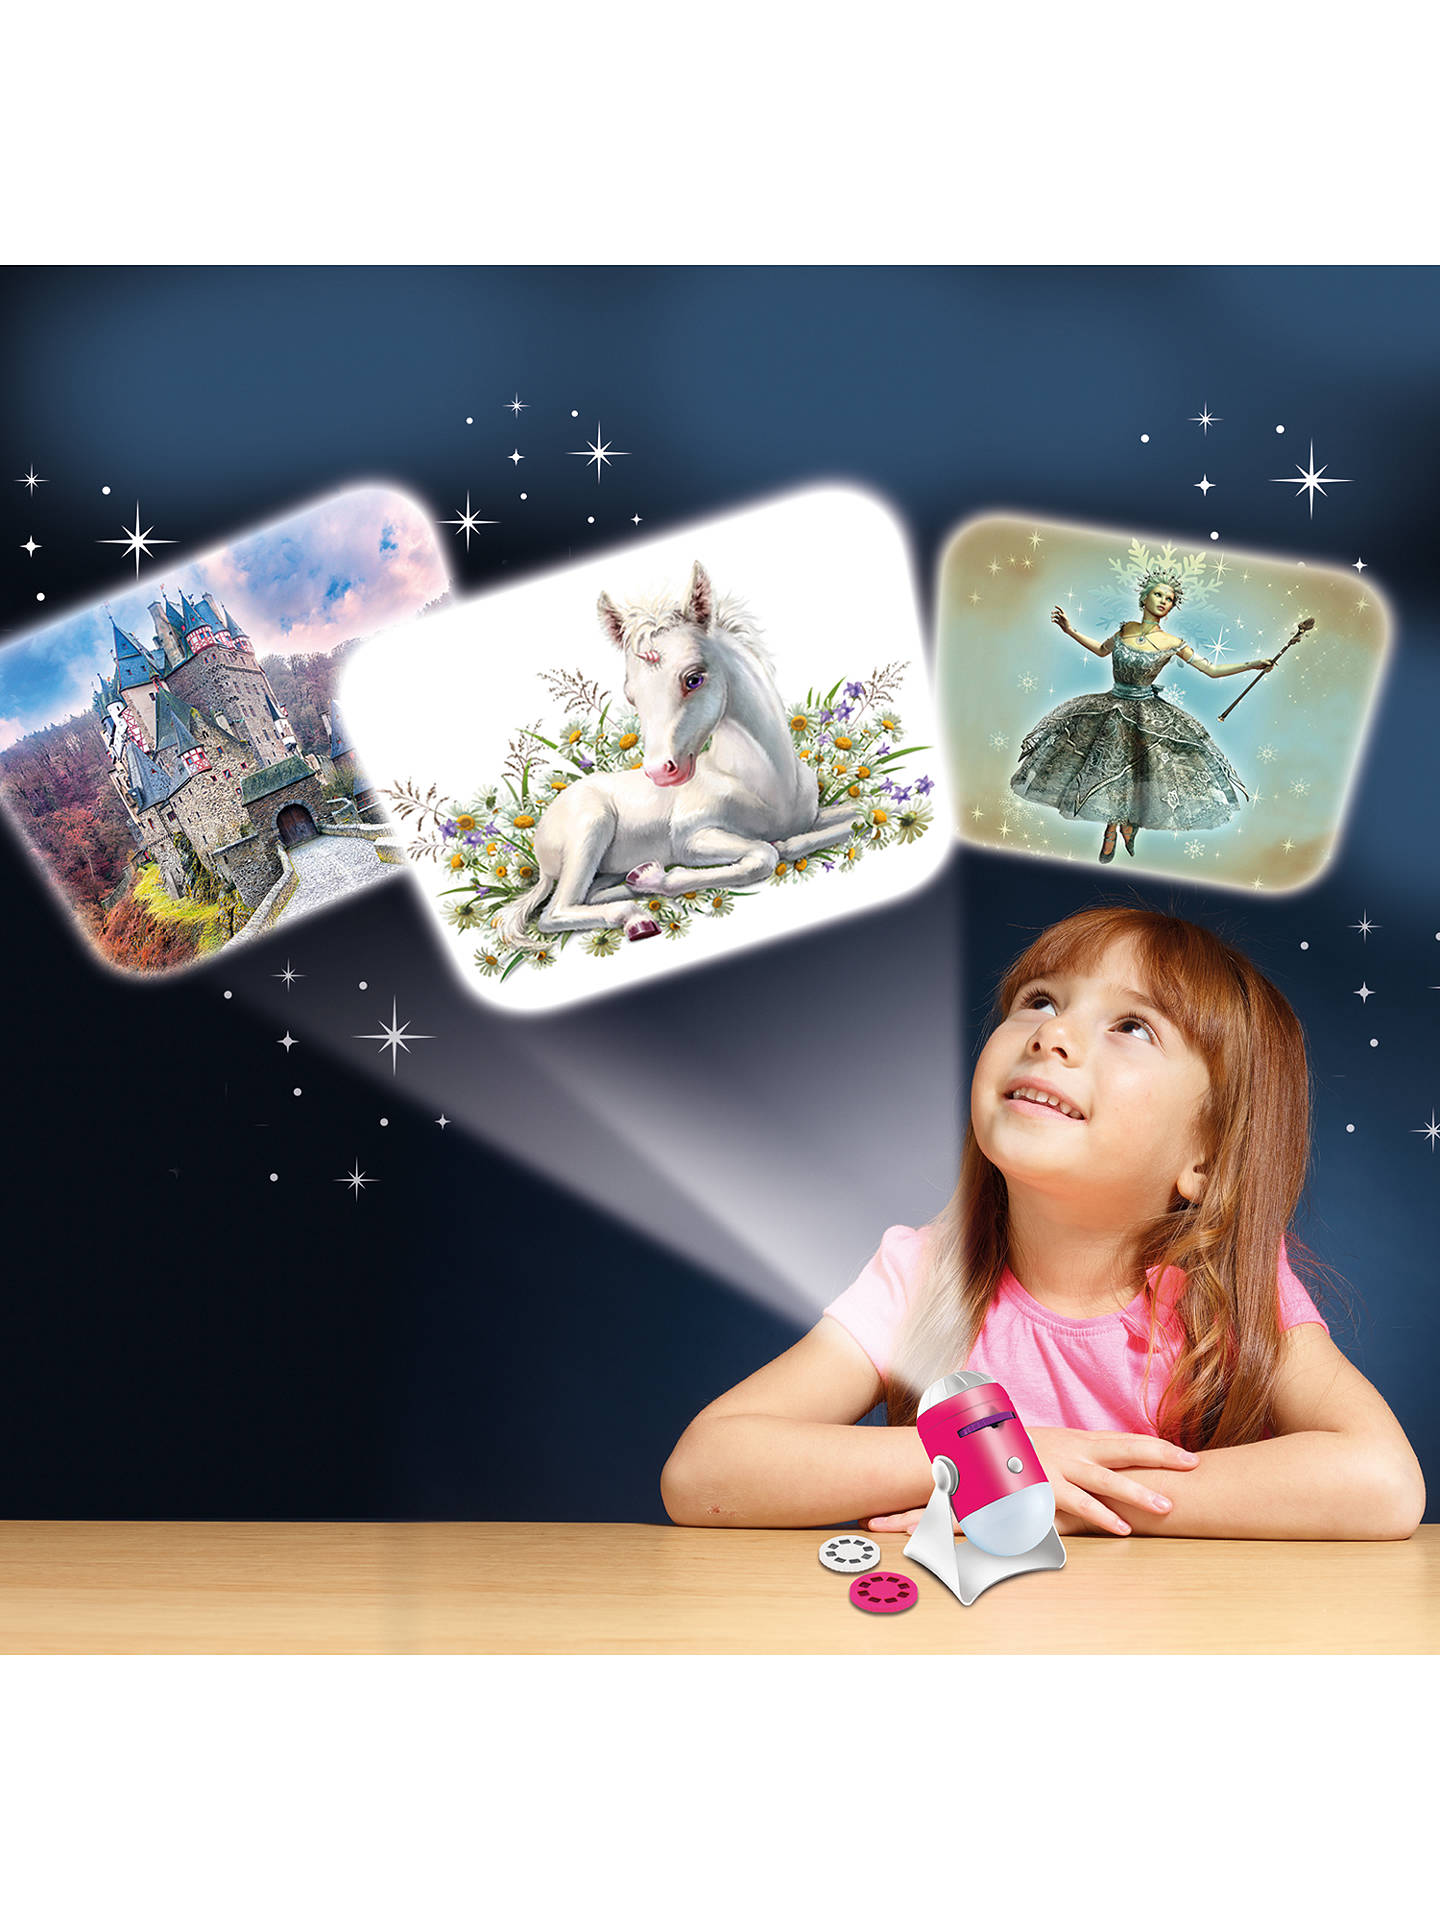 BuyBrainstorm Fairy Tale Projector and Nightlight Online at johnlewis.com